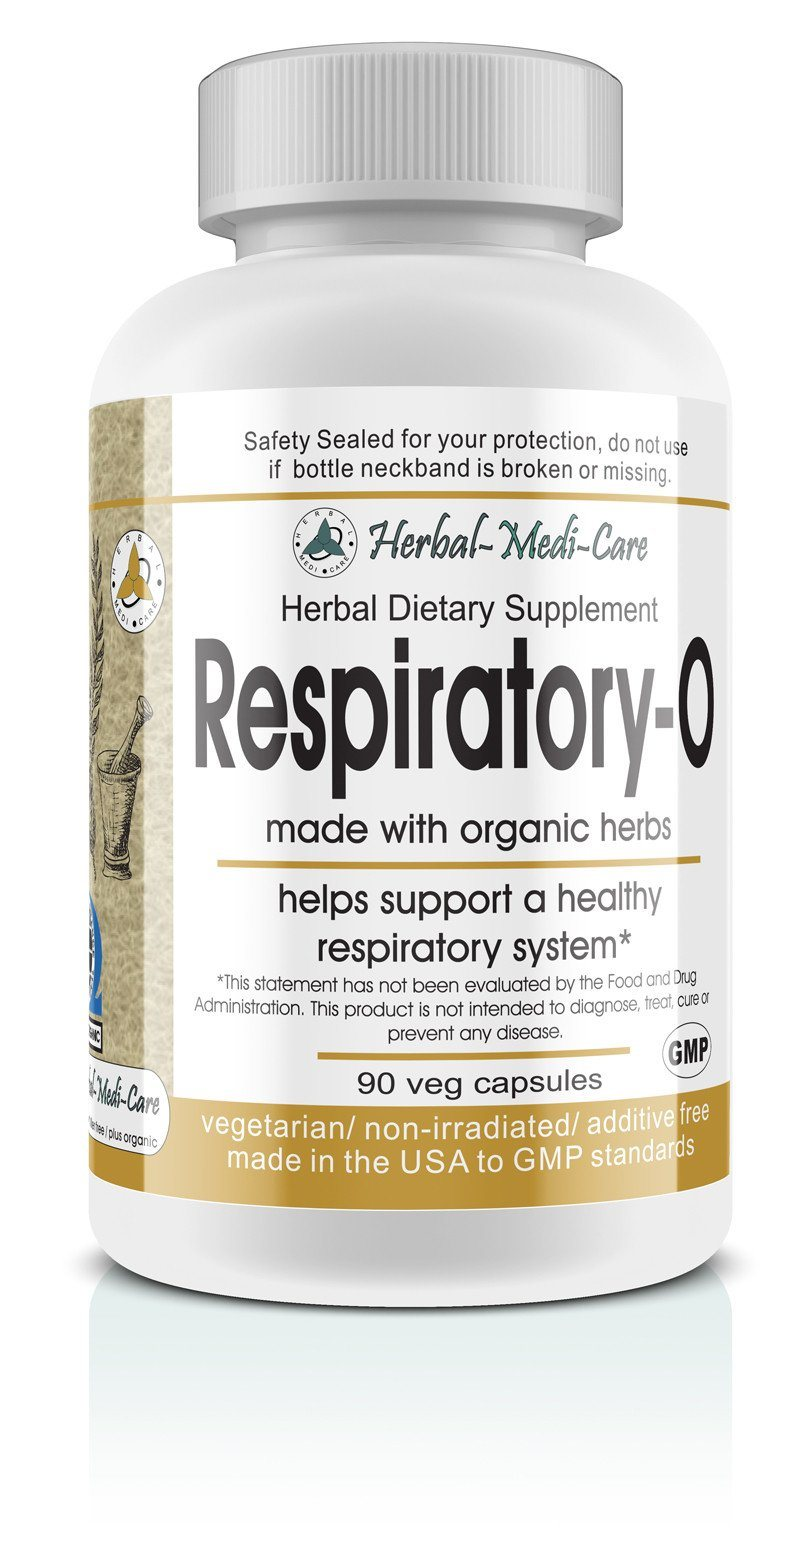 Herbal-Medi-Care Whole Food Respiratory-O (Lung) Vegetarian Capsules; 90-Count, Made with Organic - Herbal-Medi-Care Whole Food Respiratory-O (Lung) Vegetarian Capsules; 90-Count, Made with Organic - Herbal-Medi-Care Whole Food Respiratory-O (Lung) Vegetarian Capsules; 90-Count, Made with Organic